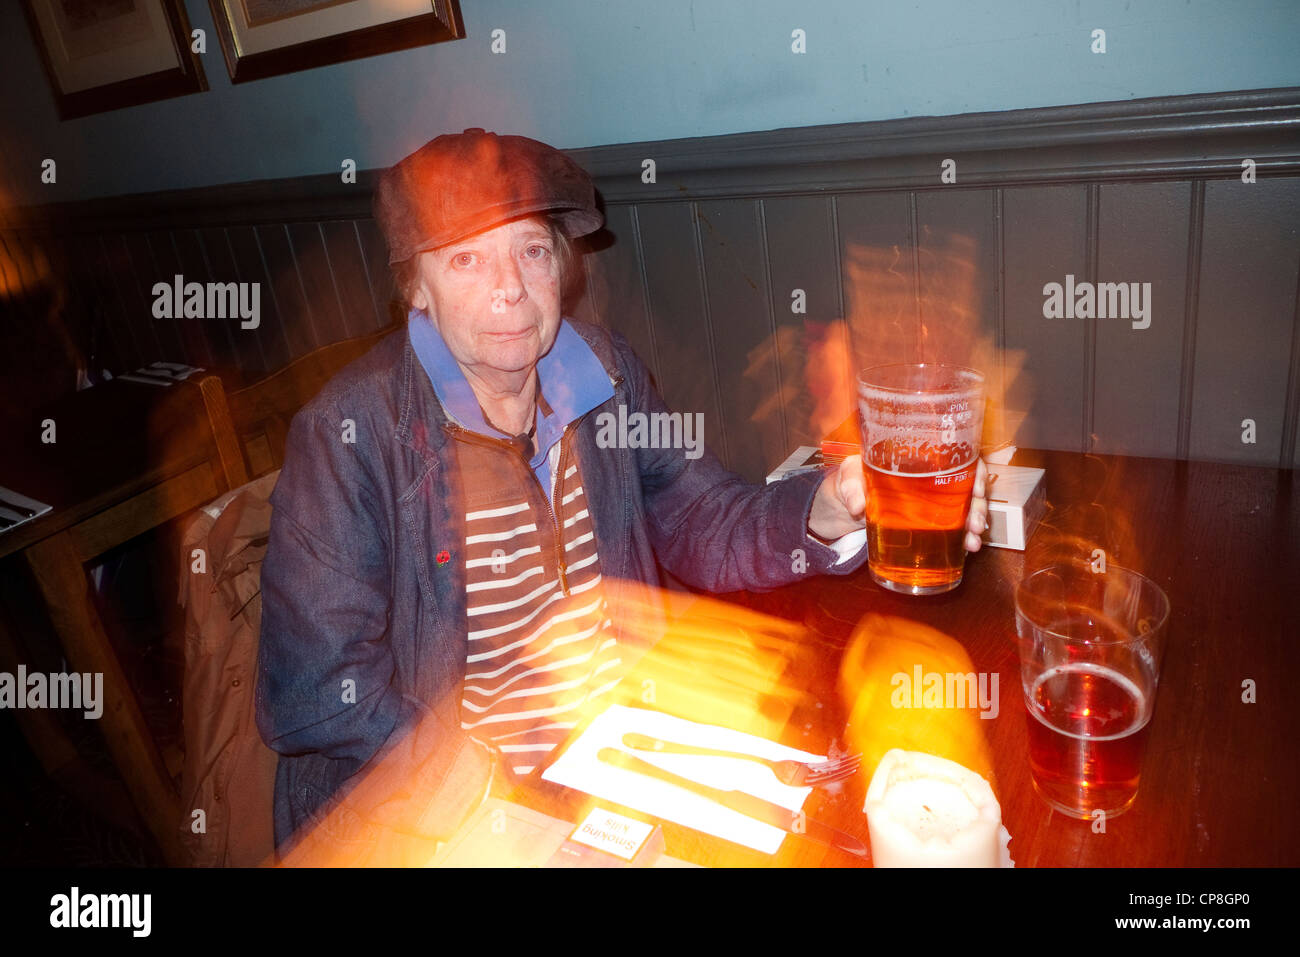 Eccentric looking woman raises a pint of beer in a pub, London, England, UK (slow sync flash) - Stock Image